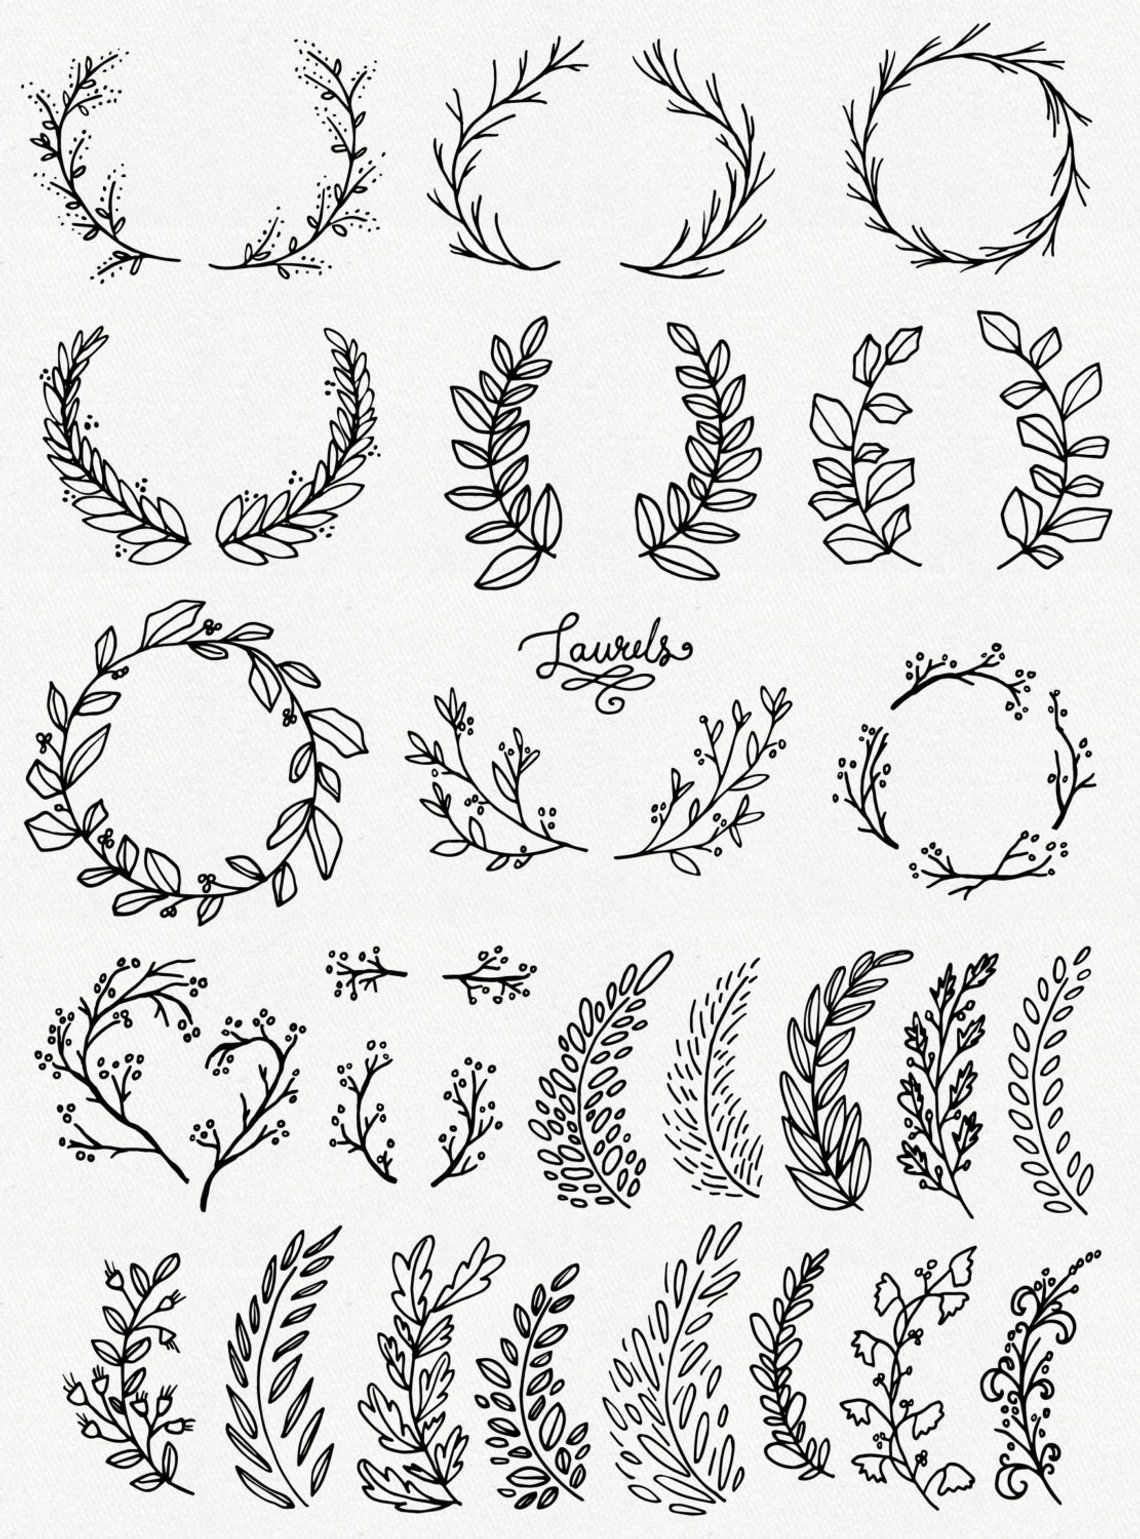 Laurel Wreath Clipart, Wreath Clip Art, Laurel Wreath PNG, Botanical Clipart, Hand Drawn Clip Art, Floral Wreath Vector, PNG, Commercial Use